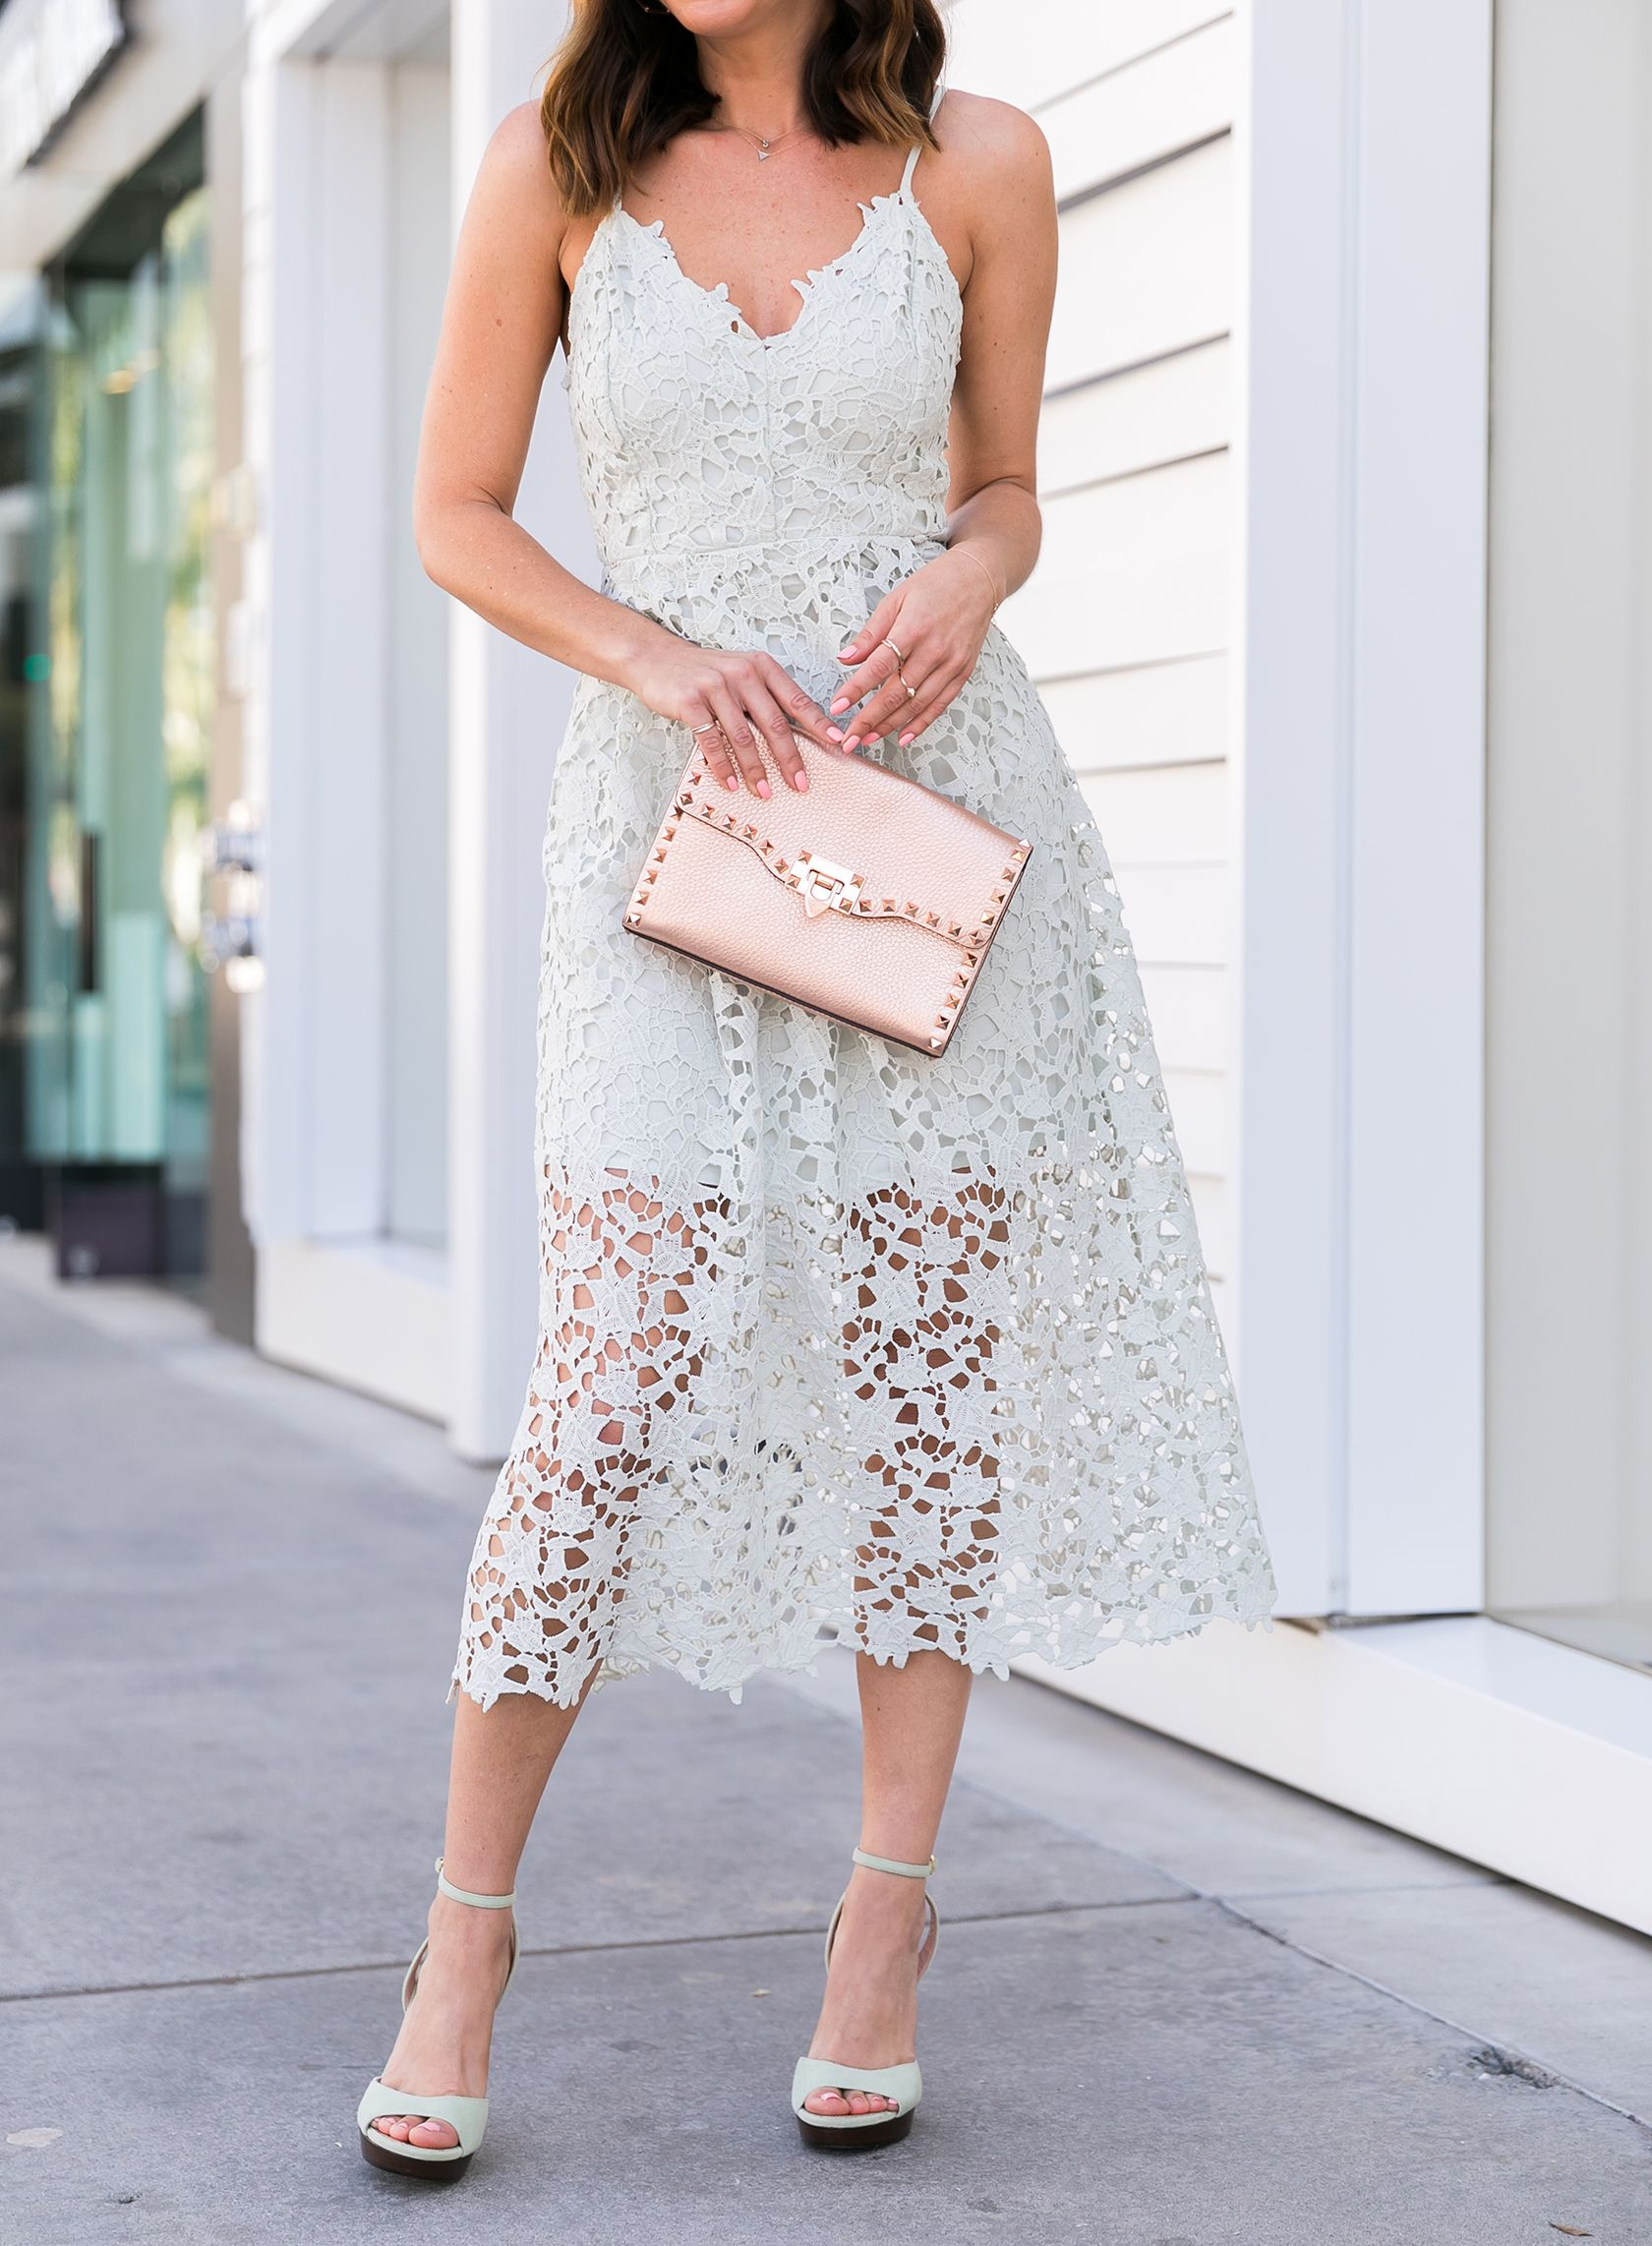 e28996380938 Sydne Style shows summer date night outfit ideas in astr lace midi dress   lace  mint  weddings  rosegold  valentino  pastels